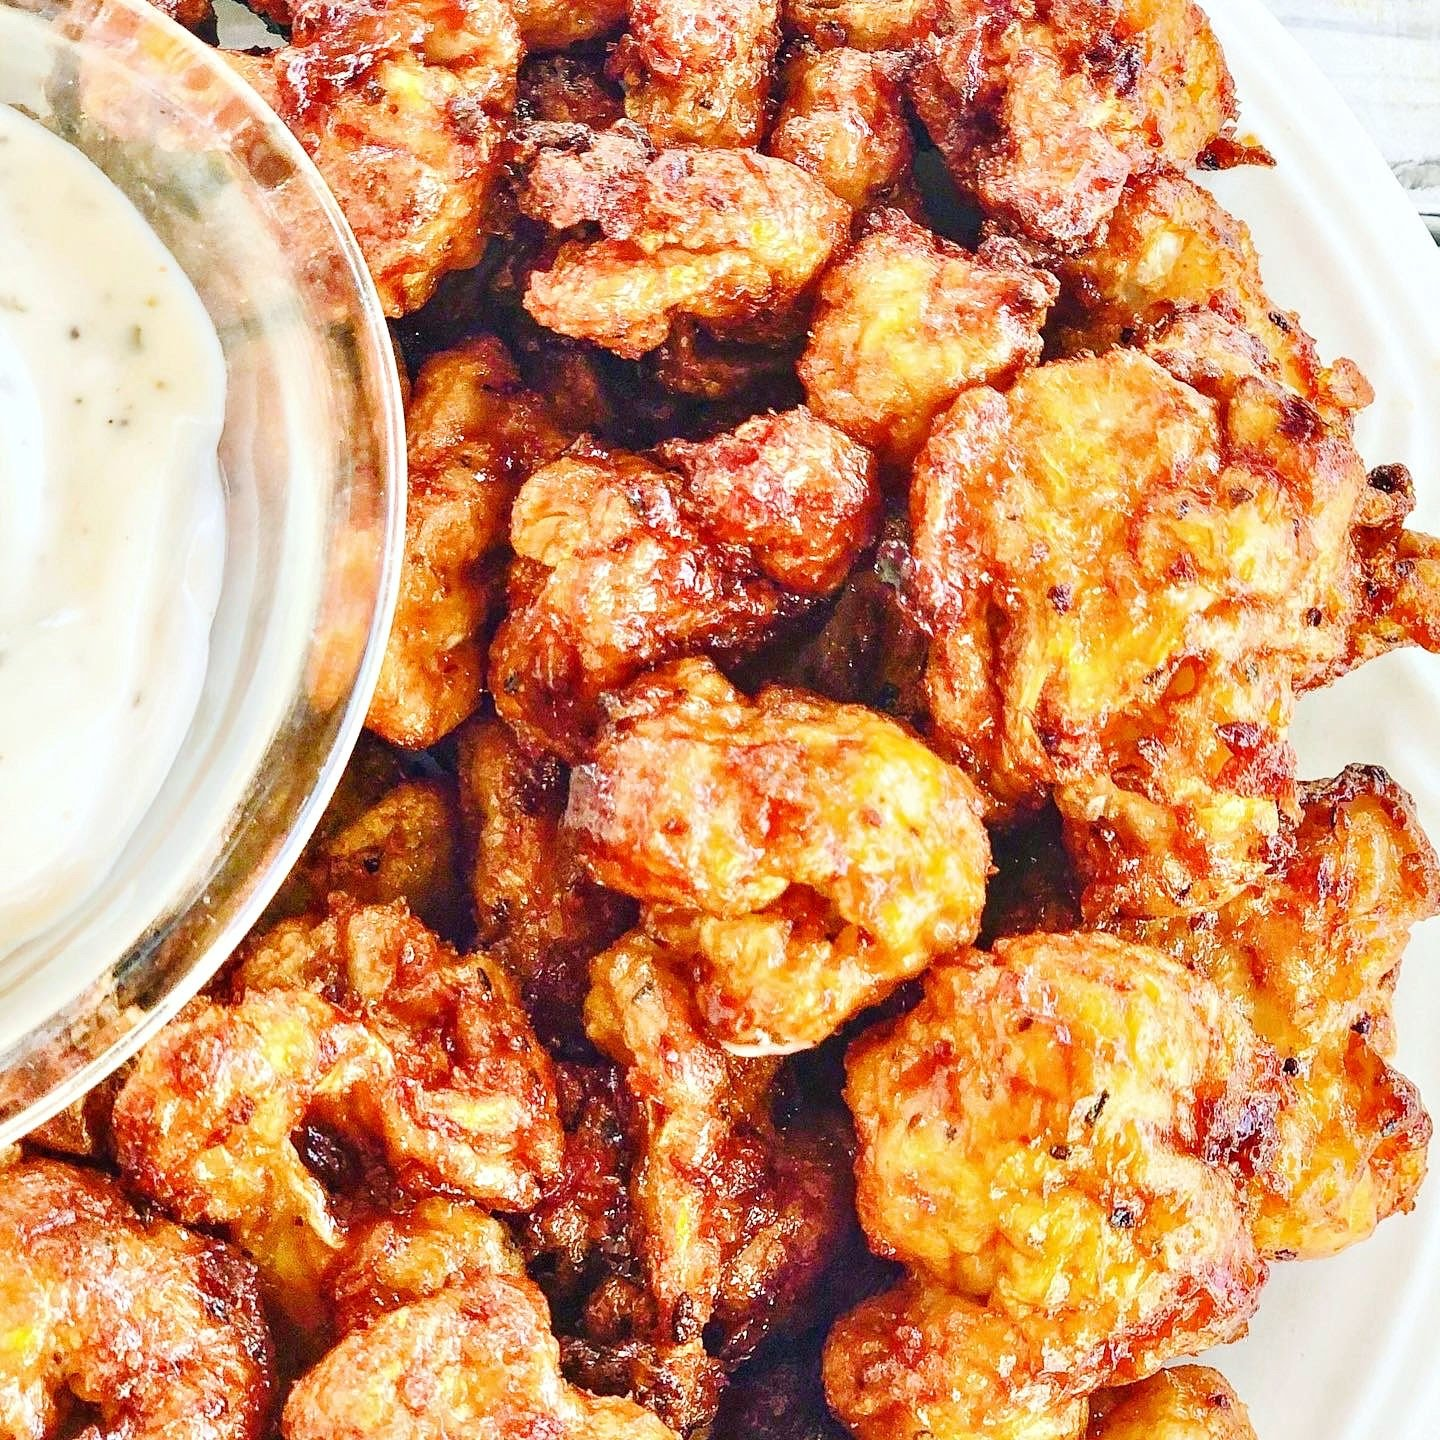 BBQ Cauliflower Bites - Crisp & delicious, finger-licking sticky, air fried BBQ cauliflower - perfect as a party snack, side dish, or entree. Six simple ingredients! via @thiswifecooks